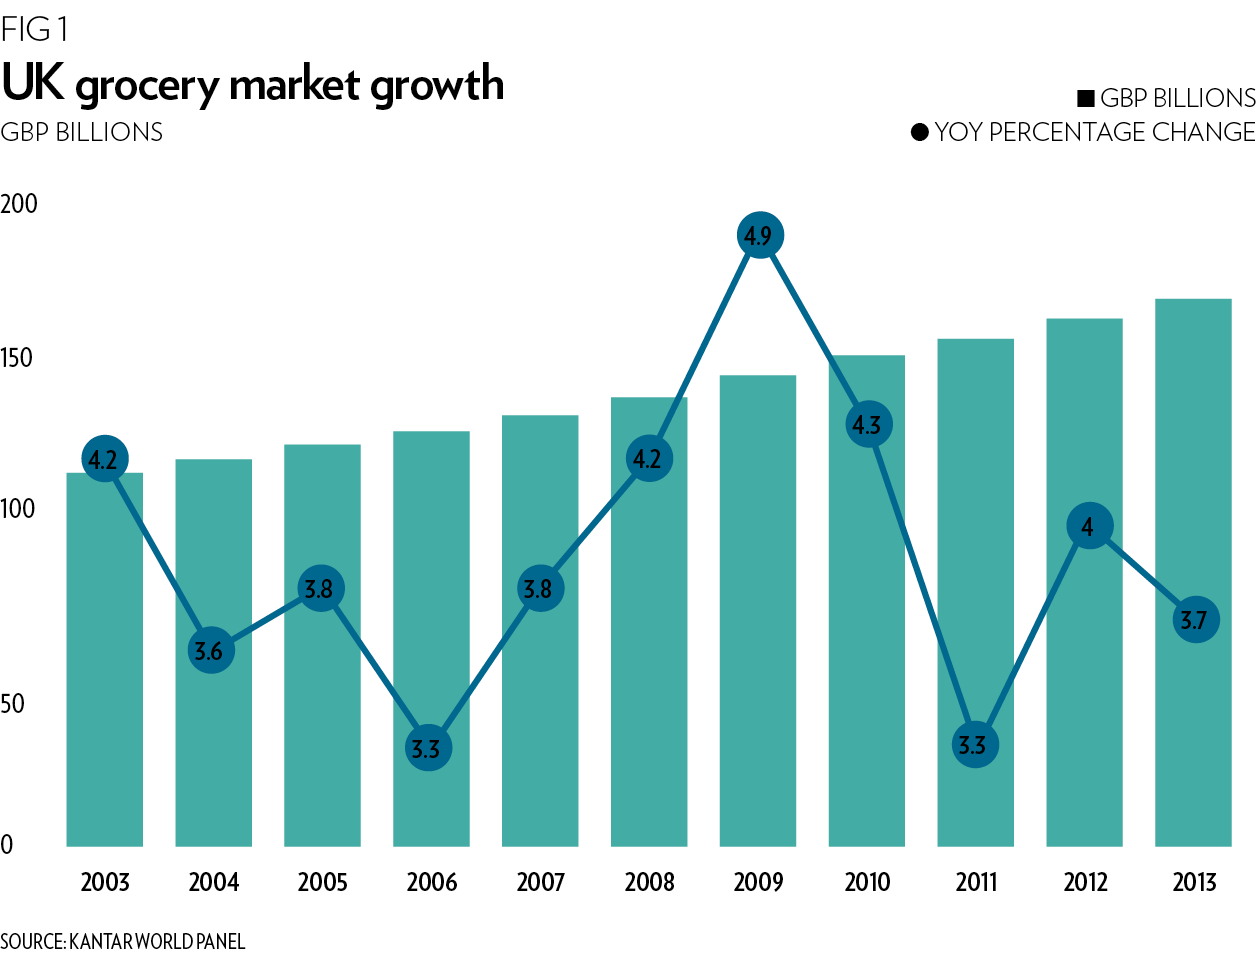 UK grocery market growth